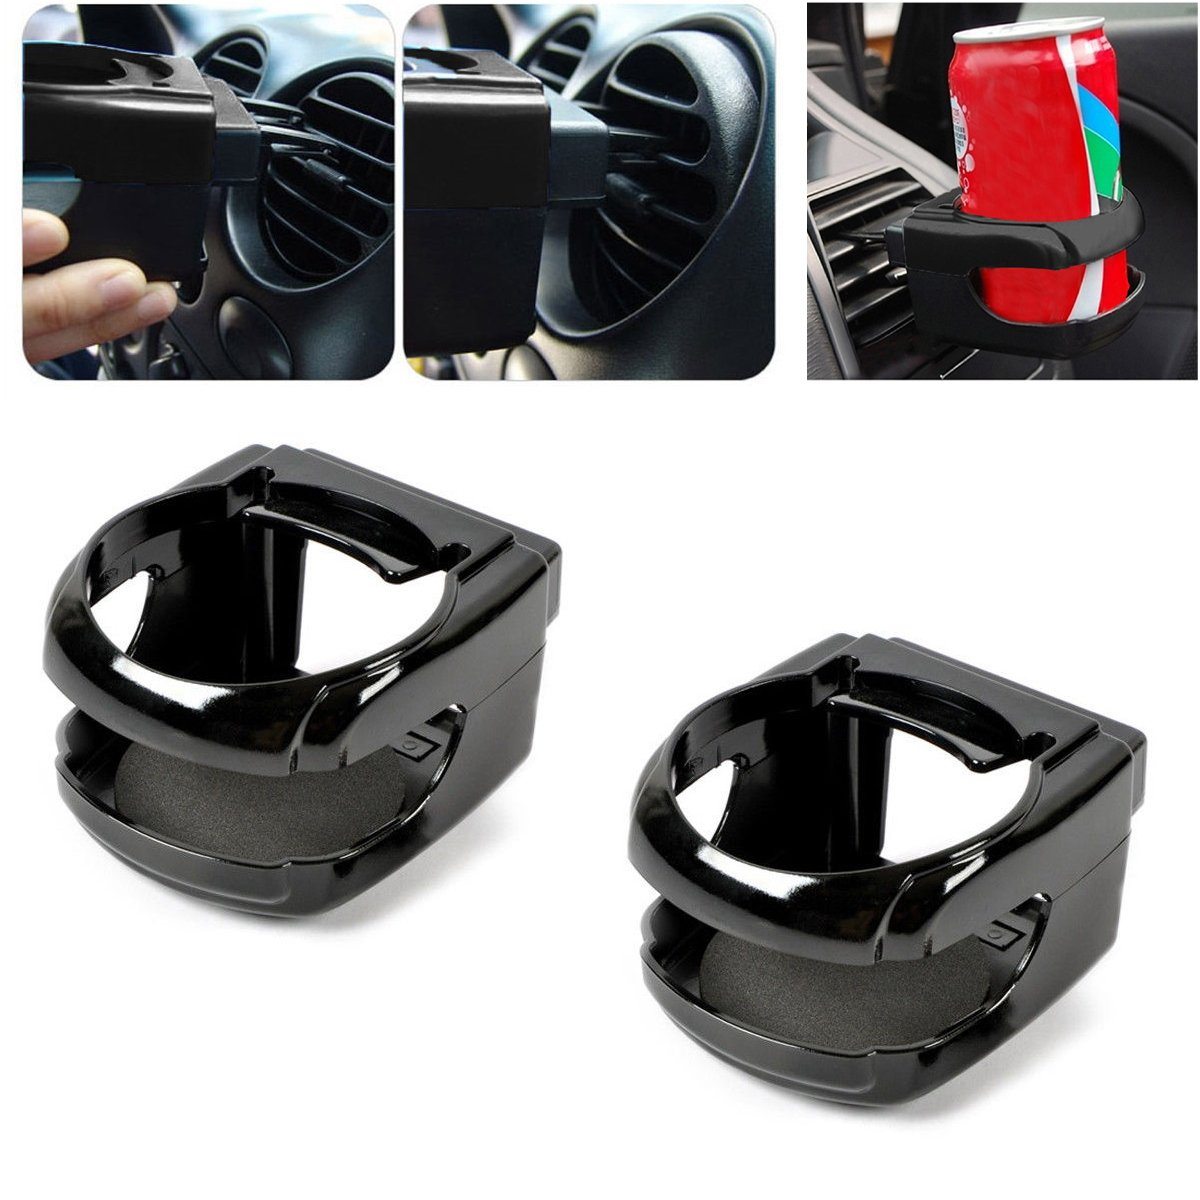 2PCS Universal Auto Car Truck Air Vent Bottle Can Drink Cup Holder Bracket Mount Tray Support QEUhang